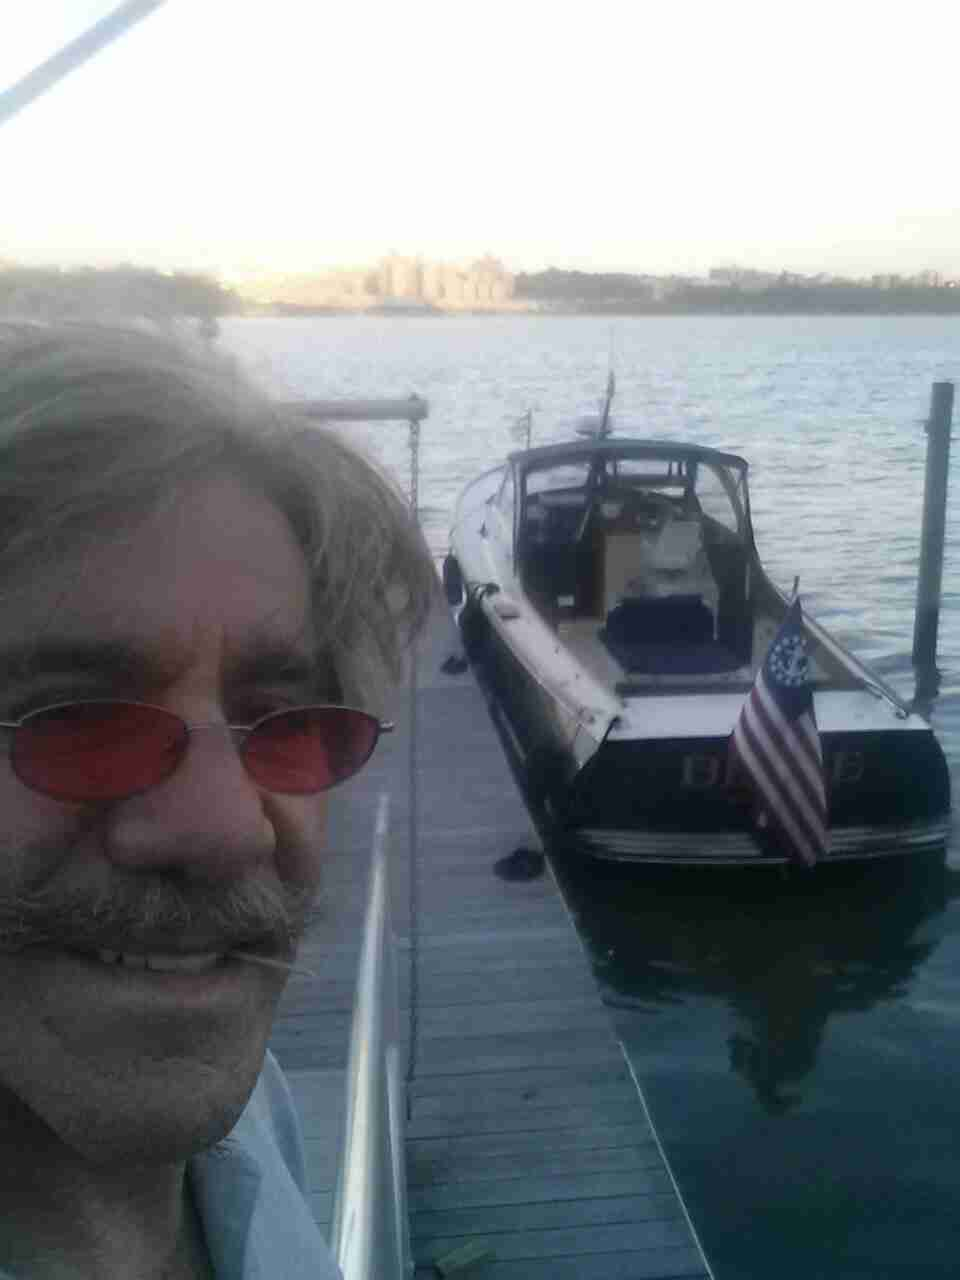 Geraldo at his home in Edgewater, New Jersey, waking up to a morning on the Hudson river with vessel Belle safely on the dock.